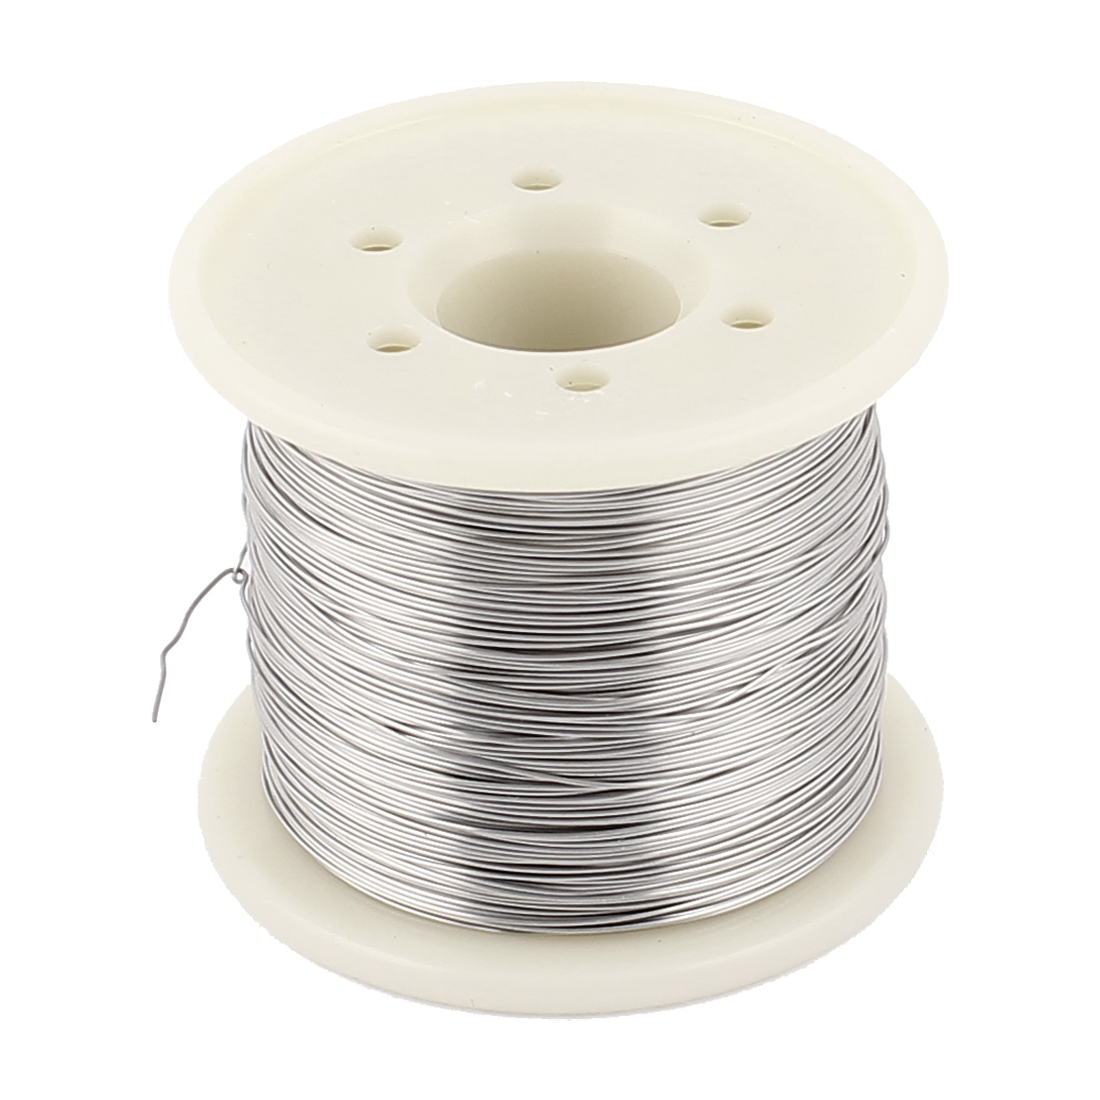 Nichrome 80 Round Heater Wire 0.4mm 26Gauge AWG 229.65ft Long Heating Element Roll